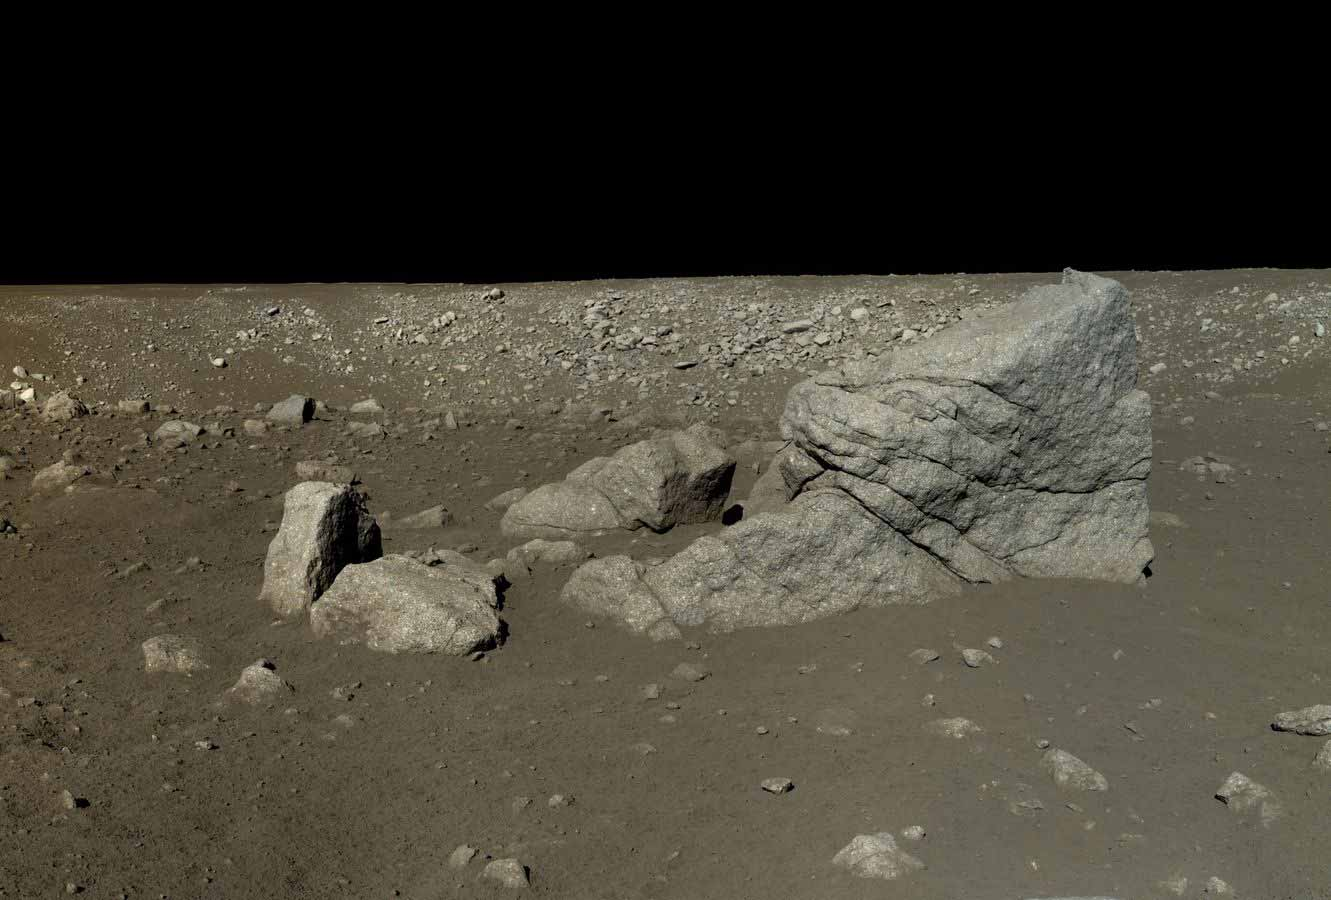 yutu-rover-view-of-pyramid-rock-long-yan